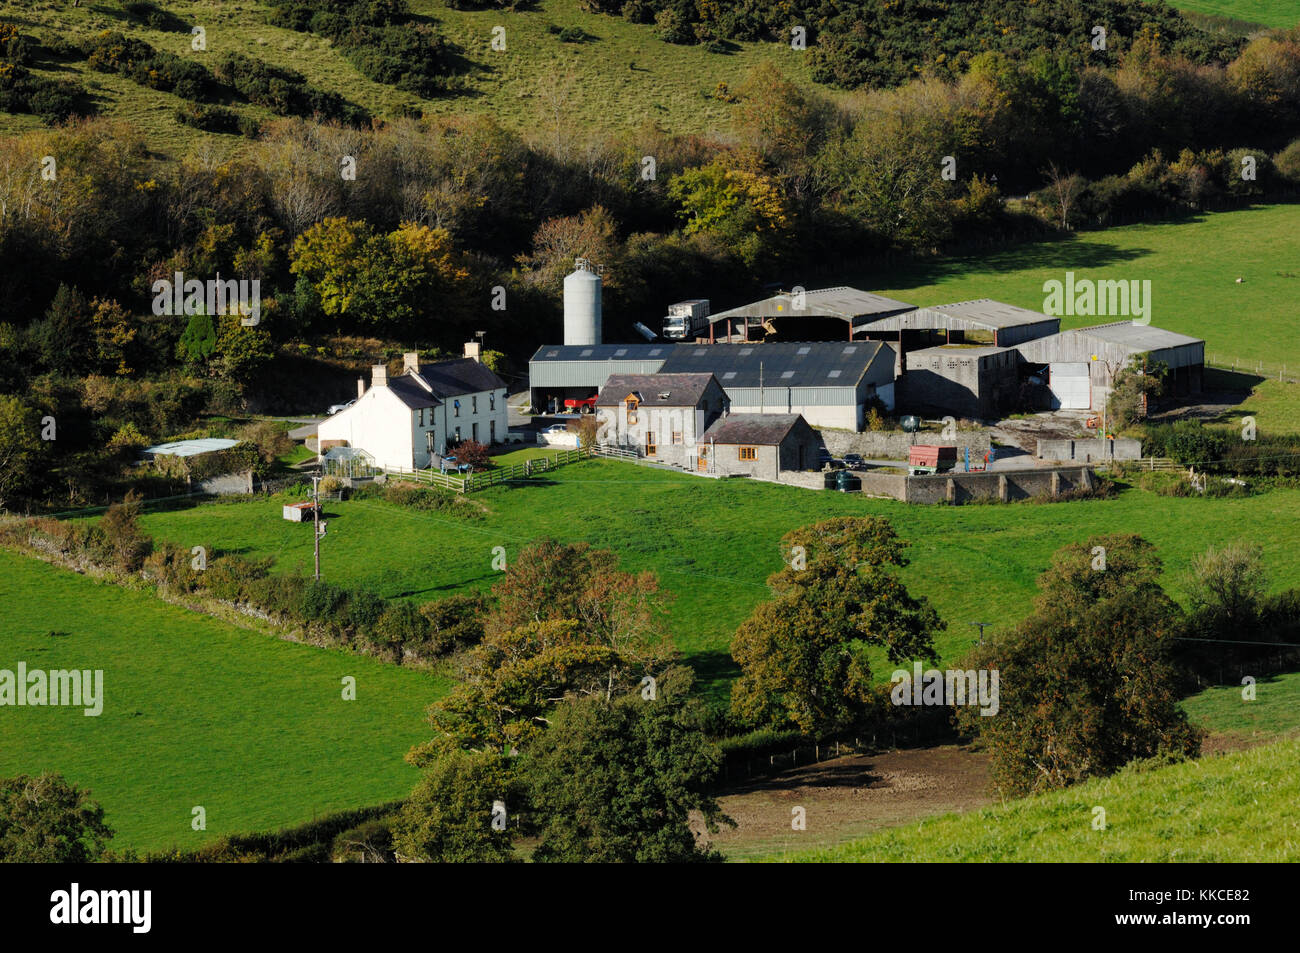 Lowland mixed arable and livestock farm complex,Llanrhystud,  Wales, UK. Stock Photo